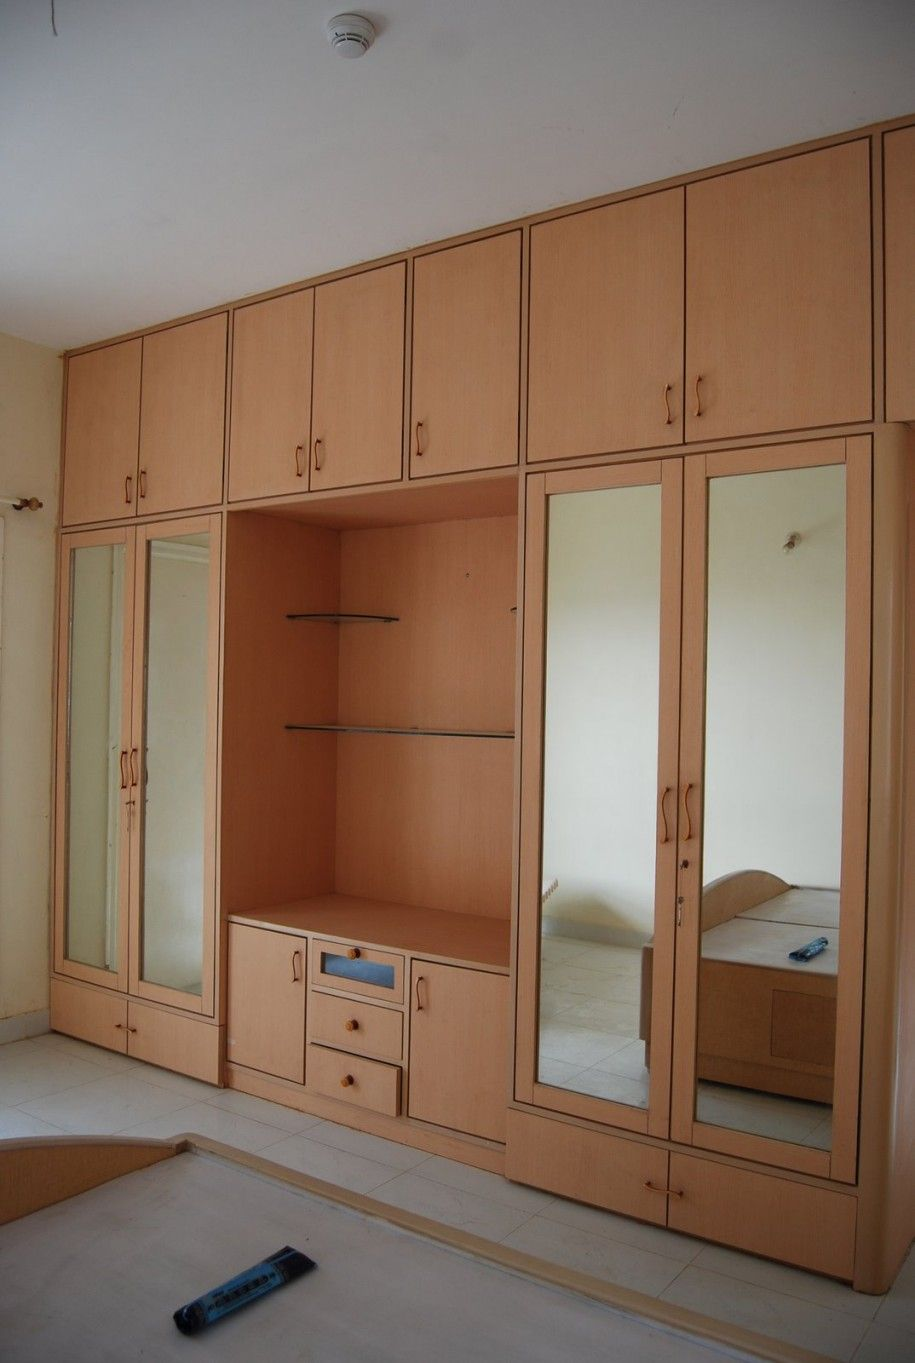 Modern And Fancy Bedroom Wardrobes And Closets   Beautiful Plywood ReachIn Bedroom  Wardrobe Design Inspiration with. Modern And Fancy Bedroom Wardrobes And Closets   Beautiful Plywood